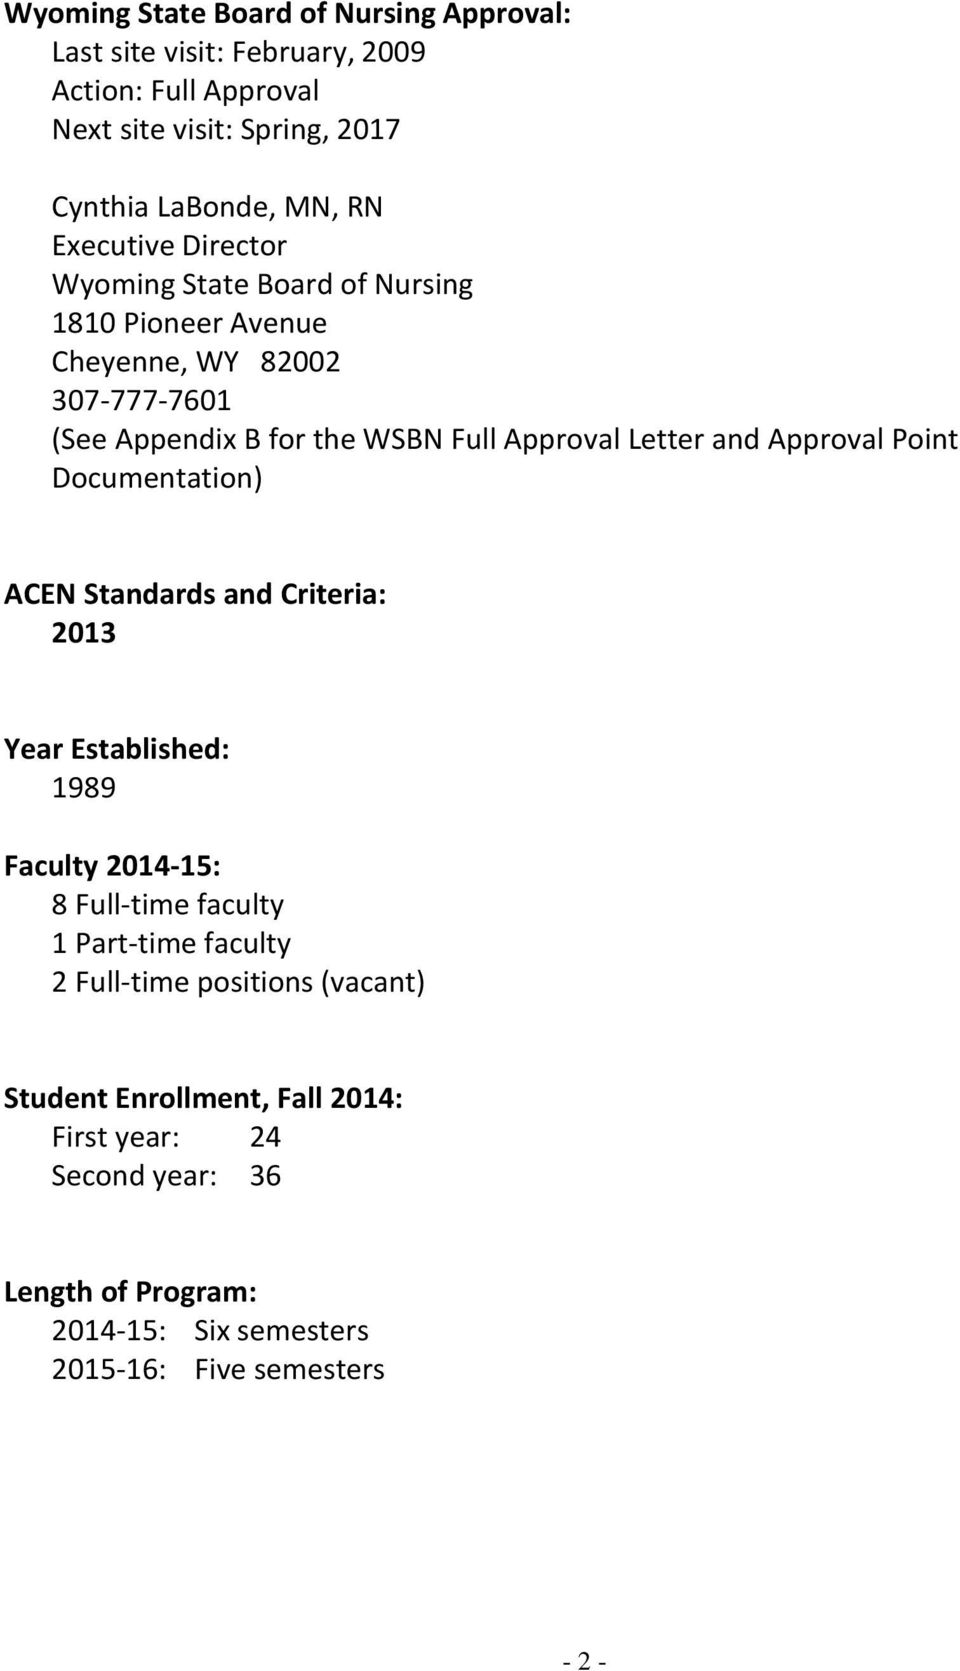 and Approval Point Documentation) ACEN Standards and Criteria: 2013 Year Established: 1989 Faculty 2014-15: 8 Full-time faculty 1 Part-time faculty 2